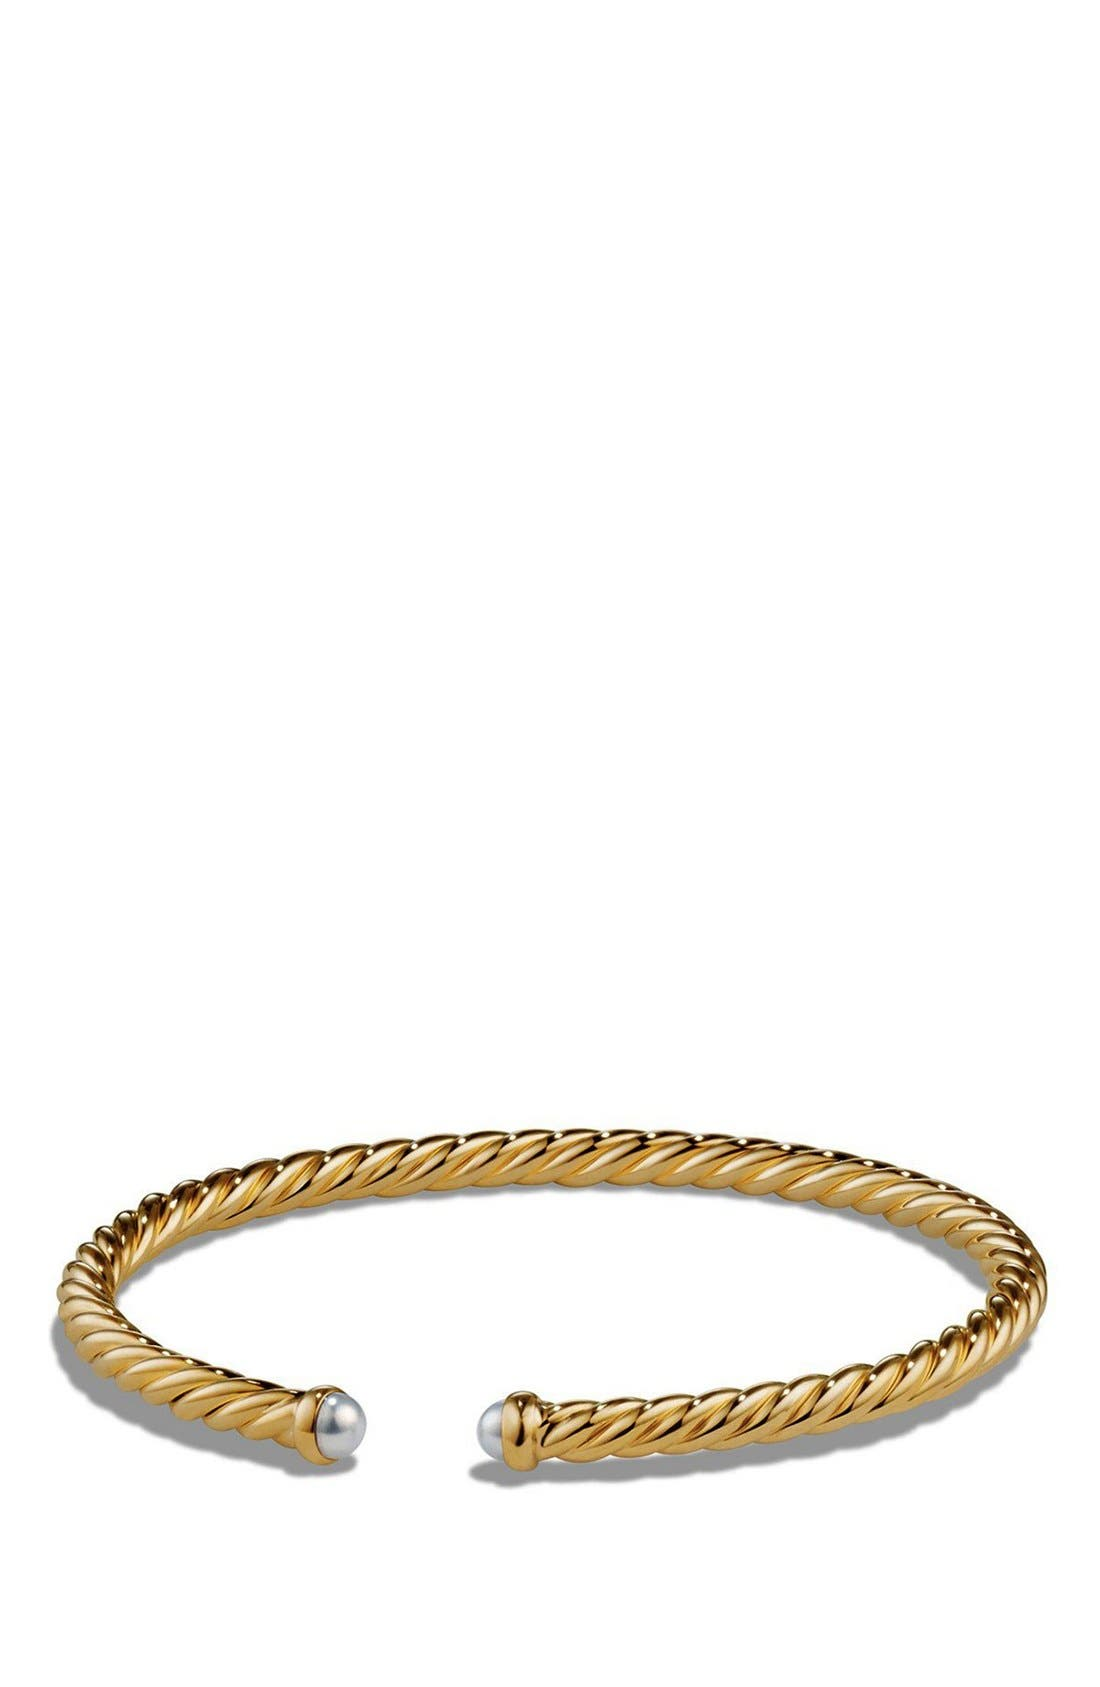 DAVID YURMAN Cable Classics Cable Spira Bracelet in 18K Gold